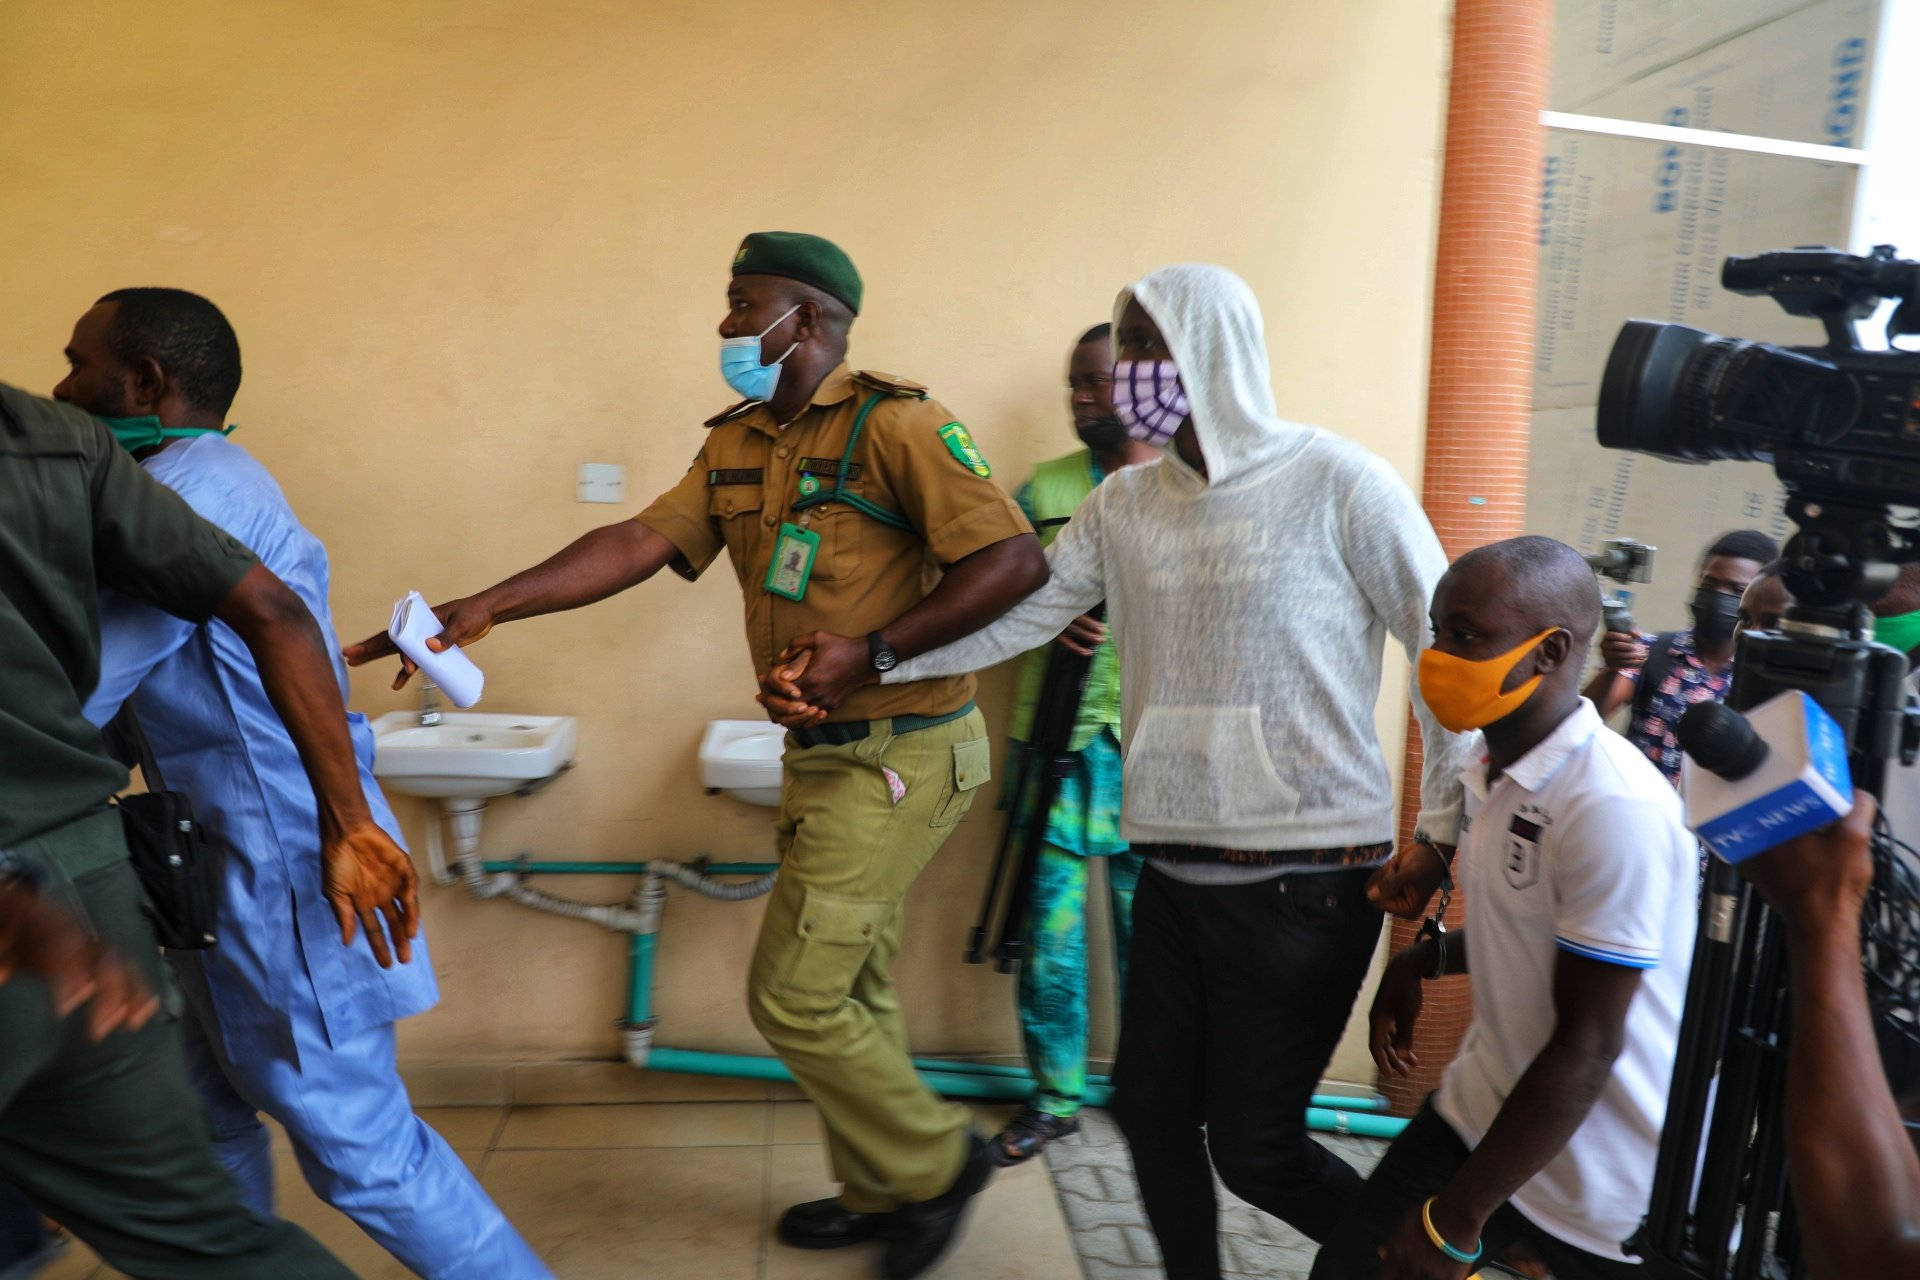 Baba Ijesha was dragged into the court by a prison warder to avoid pressmen and supporters